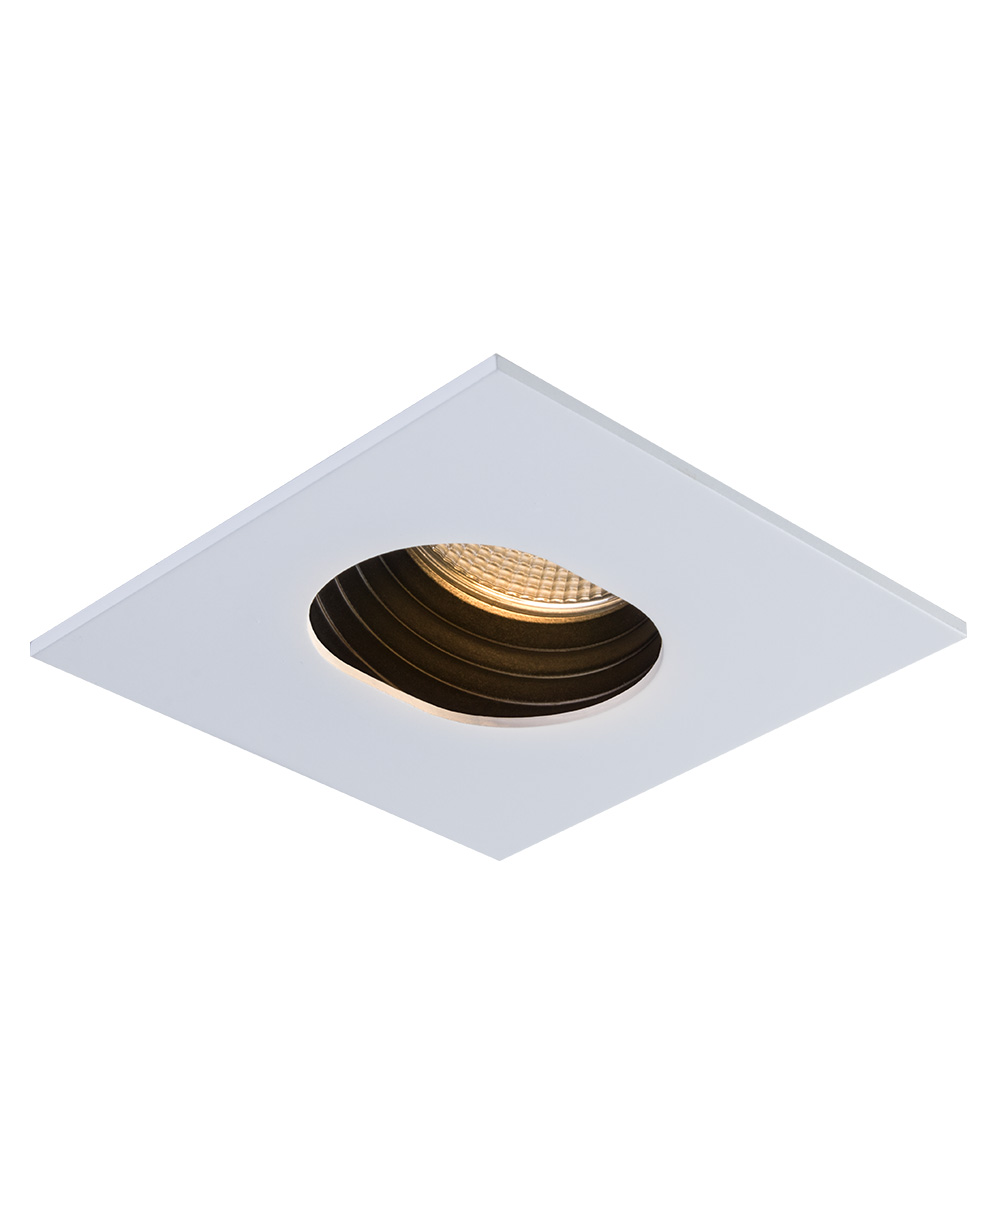 SIGMA 2 Square Slot LED Fixture with Stepped Baffle